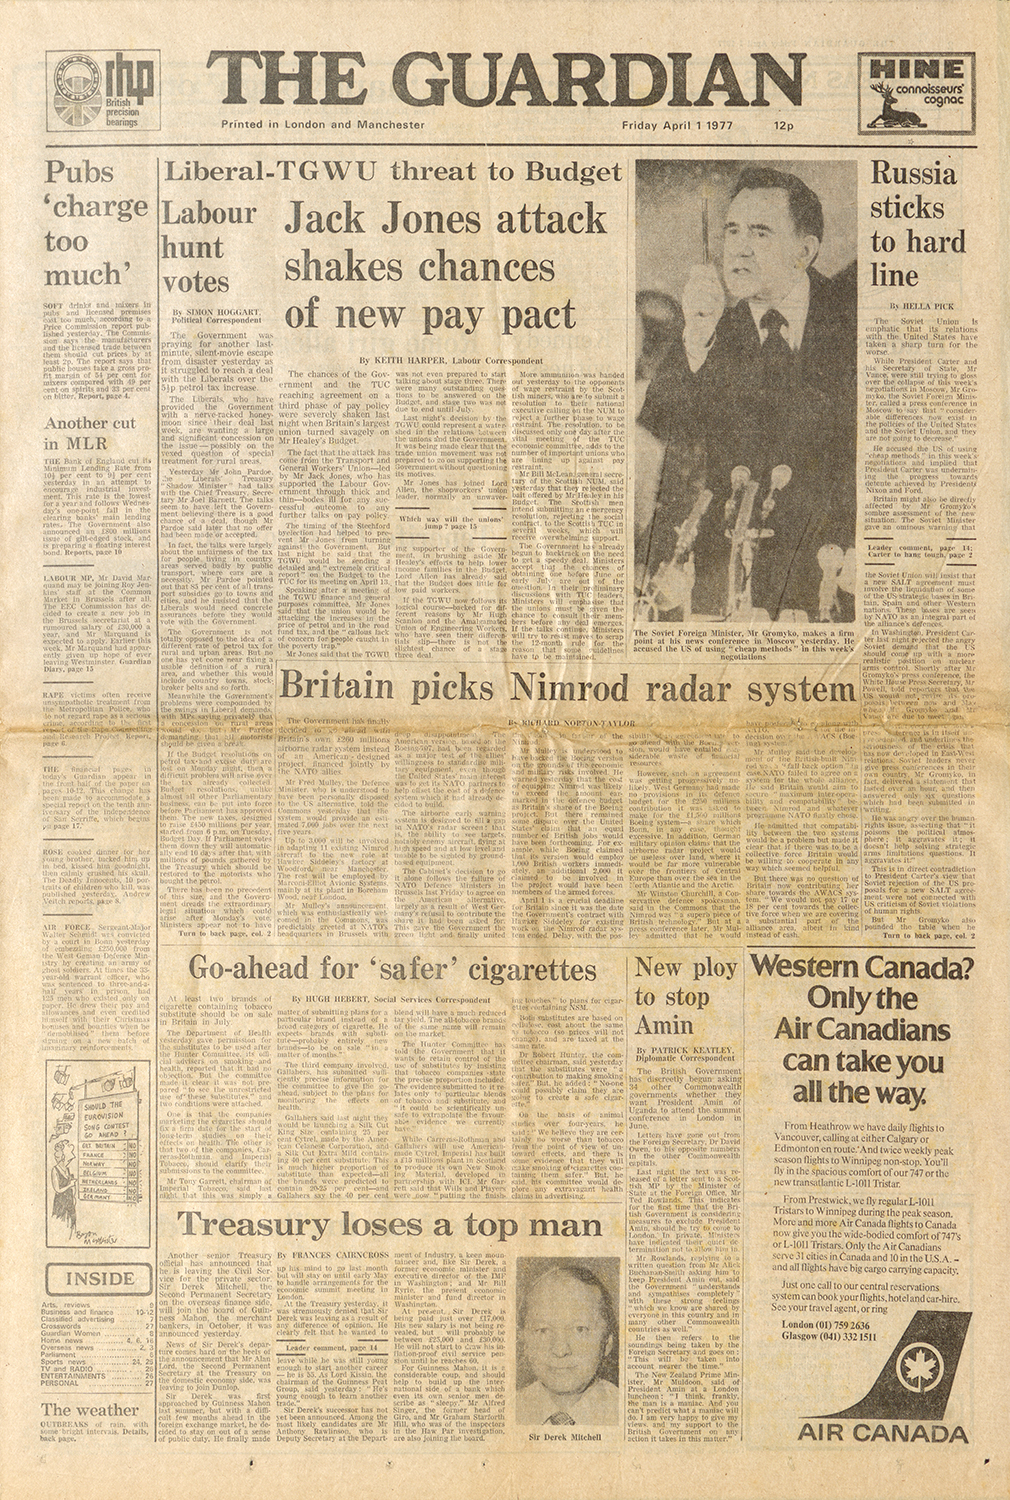 The Guardian Front Page April 1, 1977